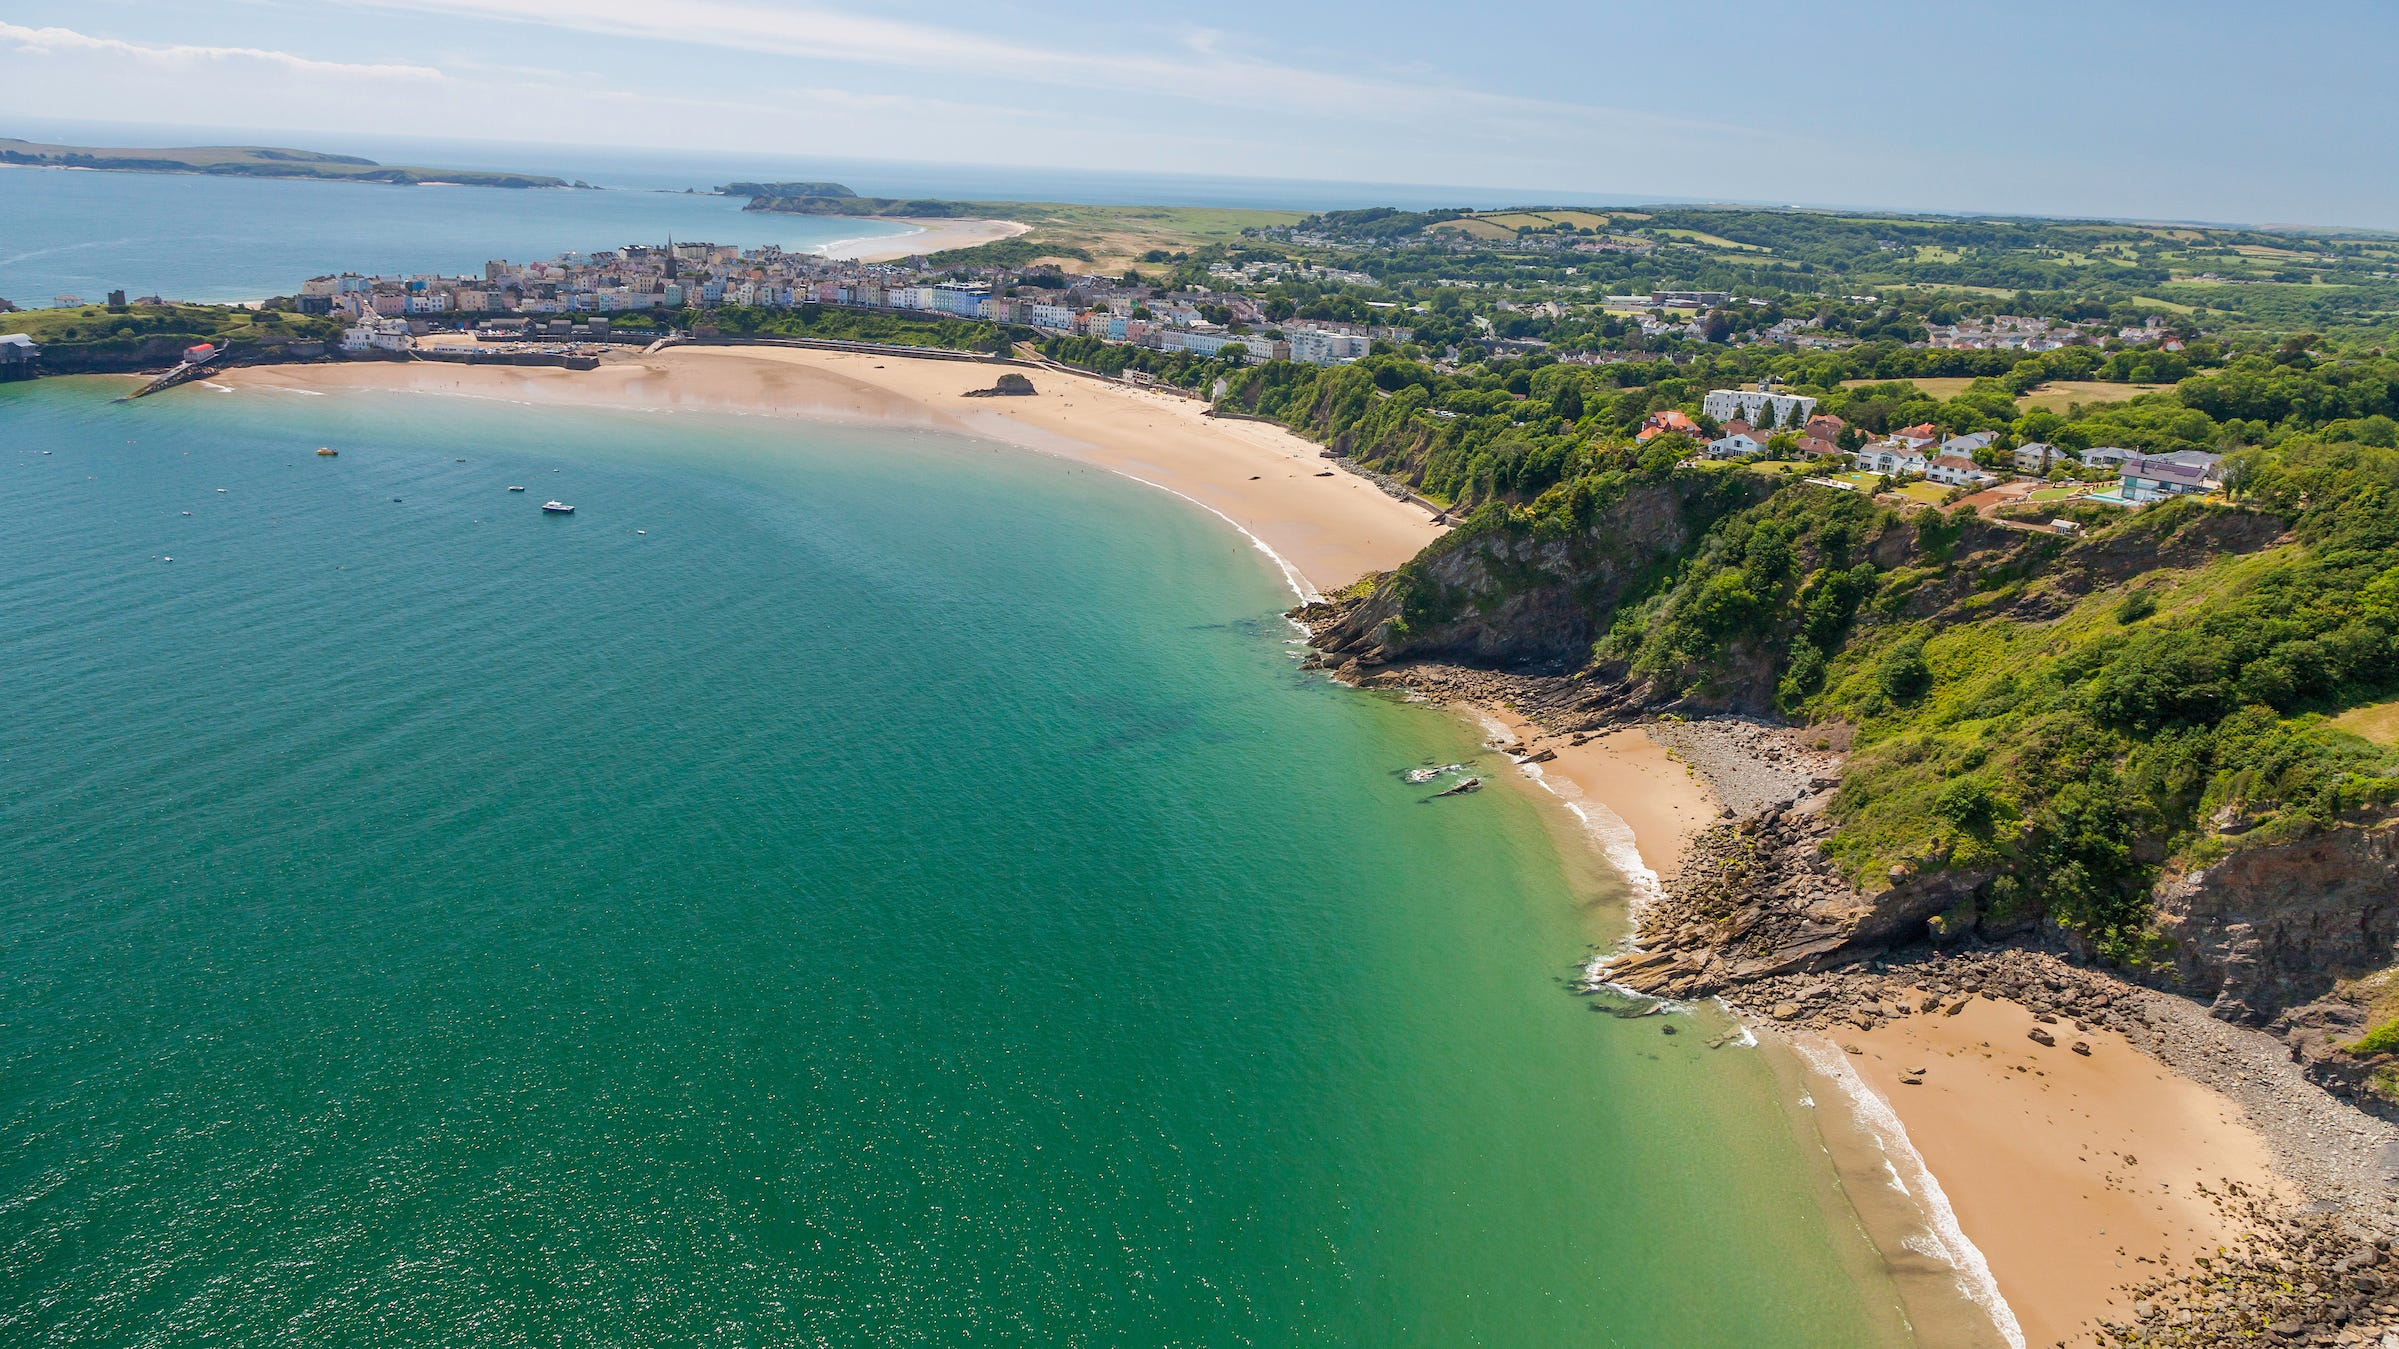 """The seaside resort of Tenby has two beaches, a castle, a tiny harbor and a couple of islands. The Georgian-era Lexton House was used in the Dylan Thomas biopic """"The Edge of Love"""" and the BBC's """"Vanity Fair."""""""